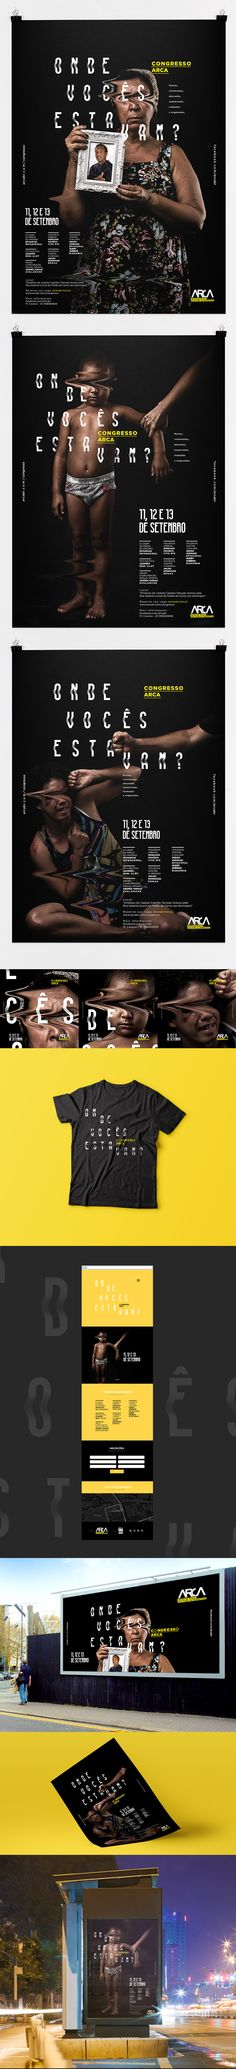 Congresso Arca on Behance